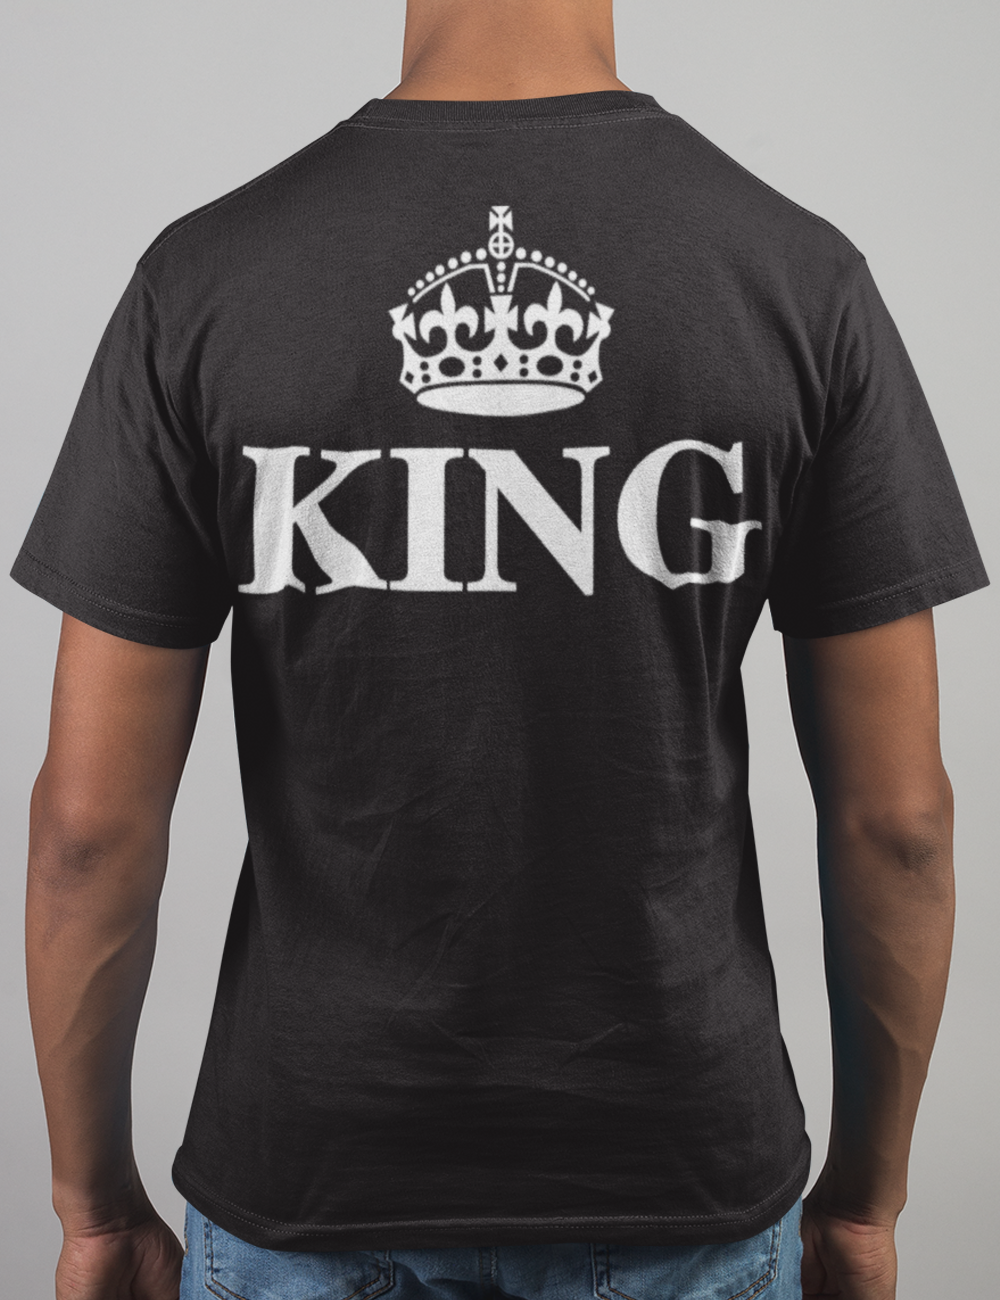 The King | Back Print T-Shirt